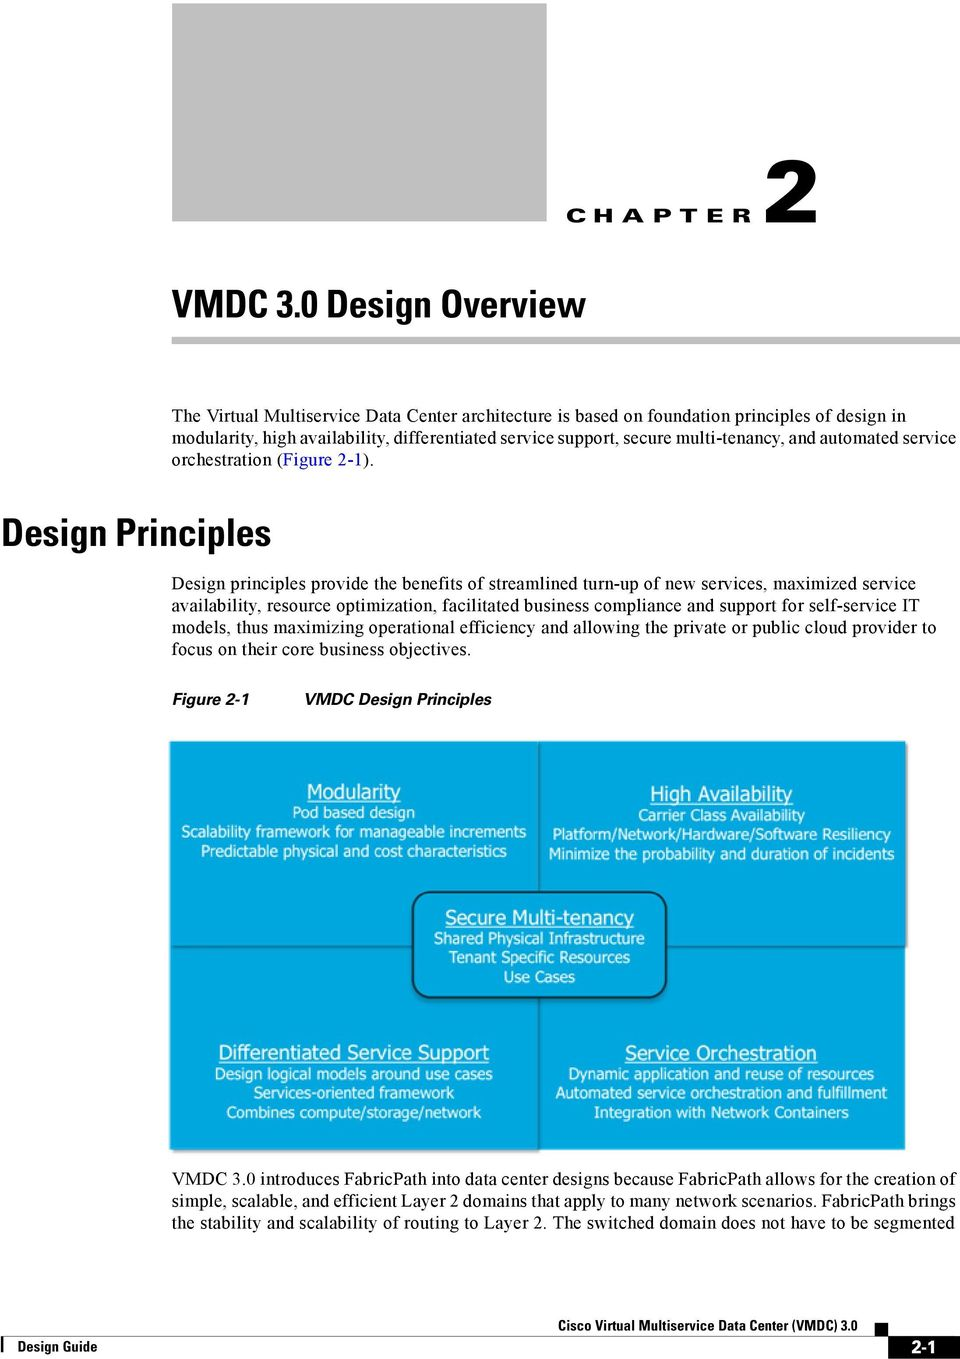 Design Principles Design principles provide the benefits of streamlined turn-up of new services, maximized service availability, resource optimization, facilitated business compliance and support for